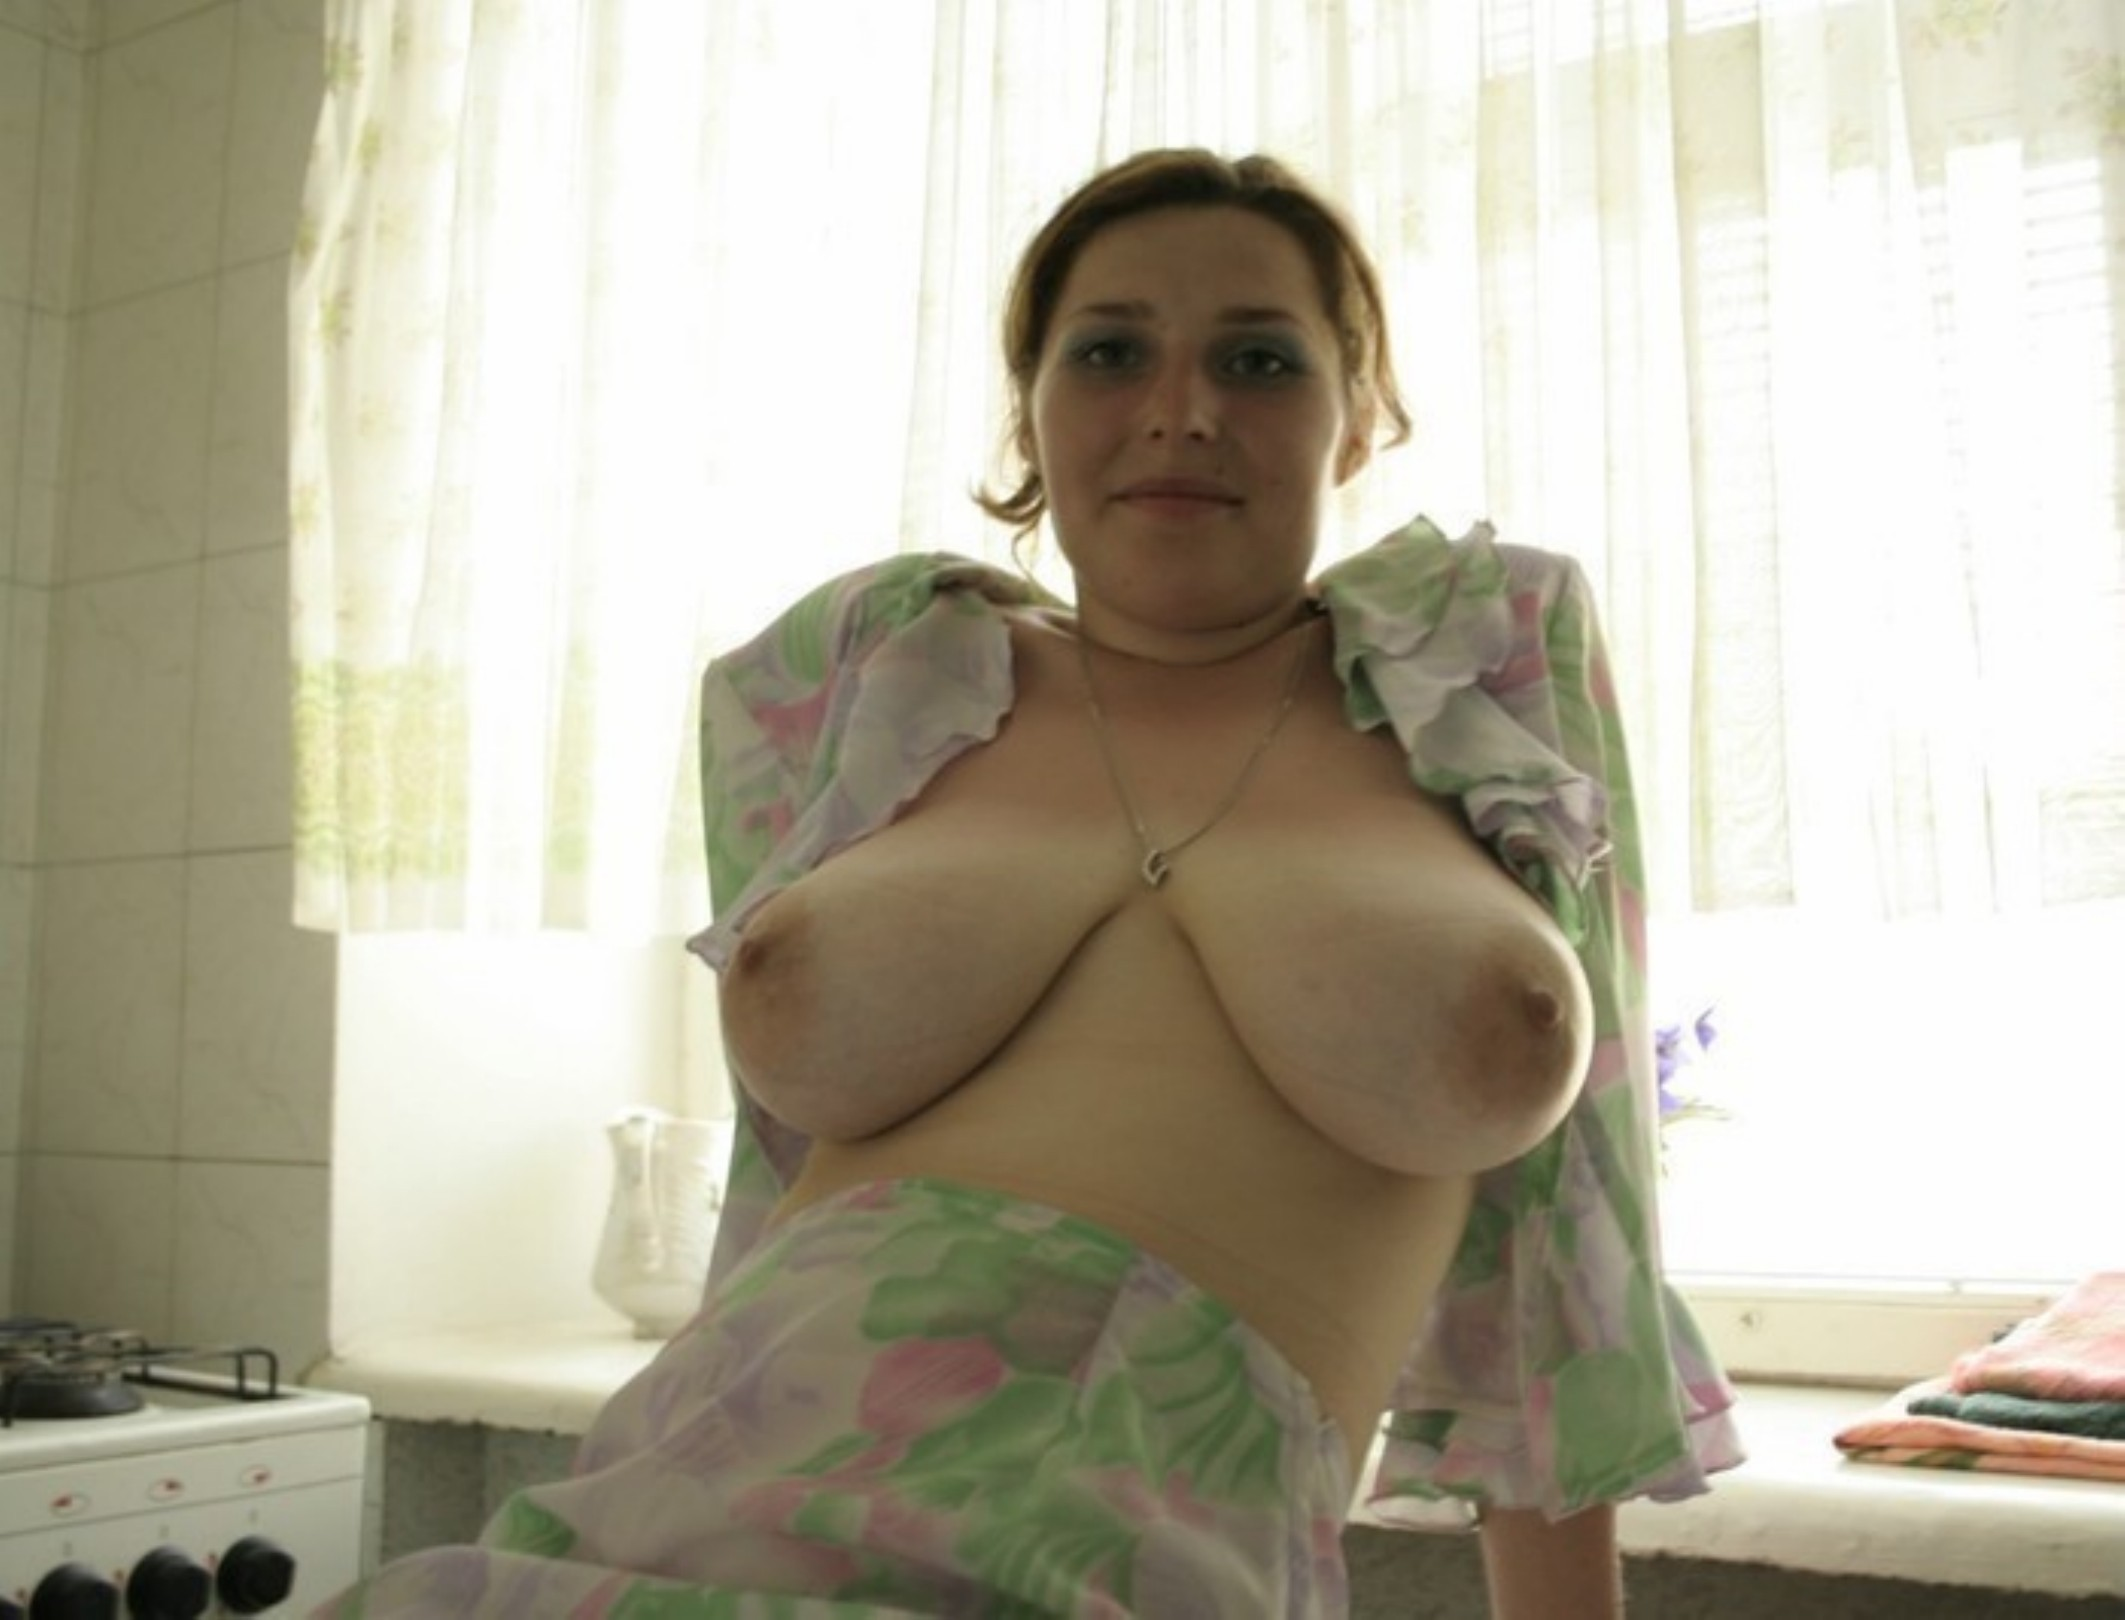 Amateur big tits home sneaking around 3